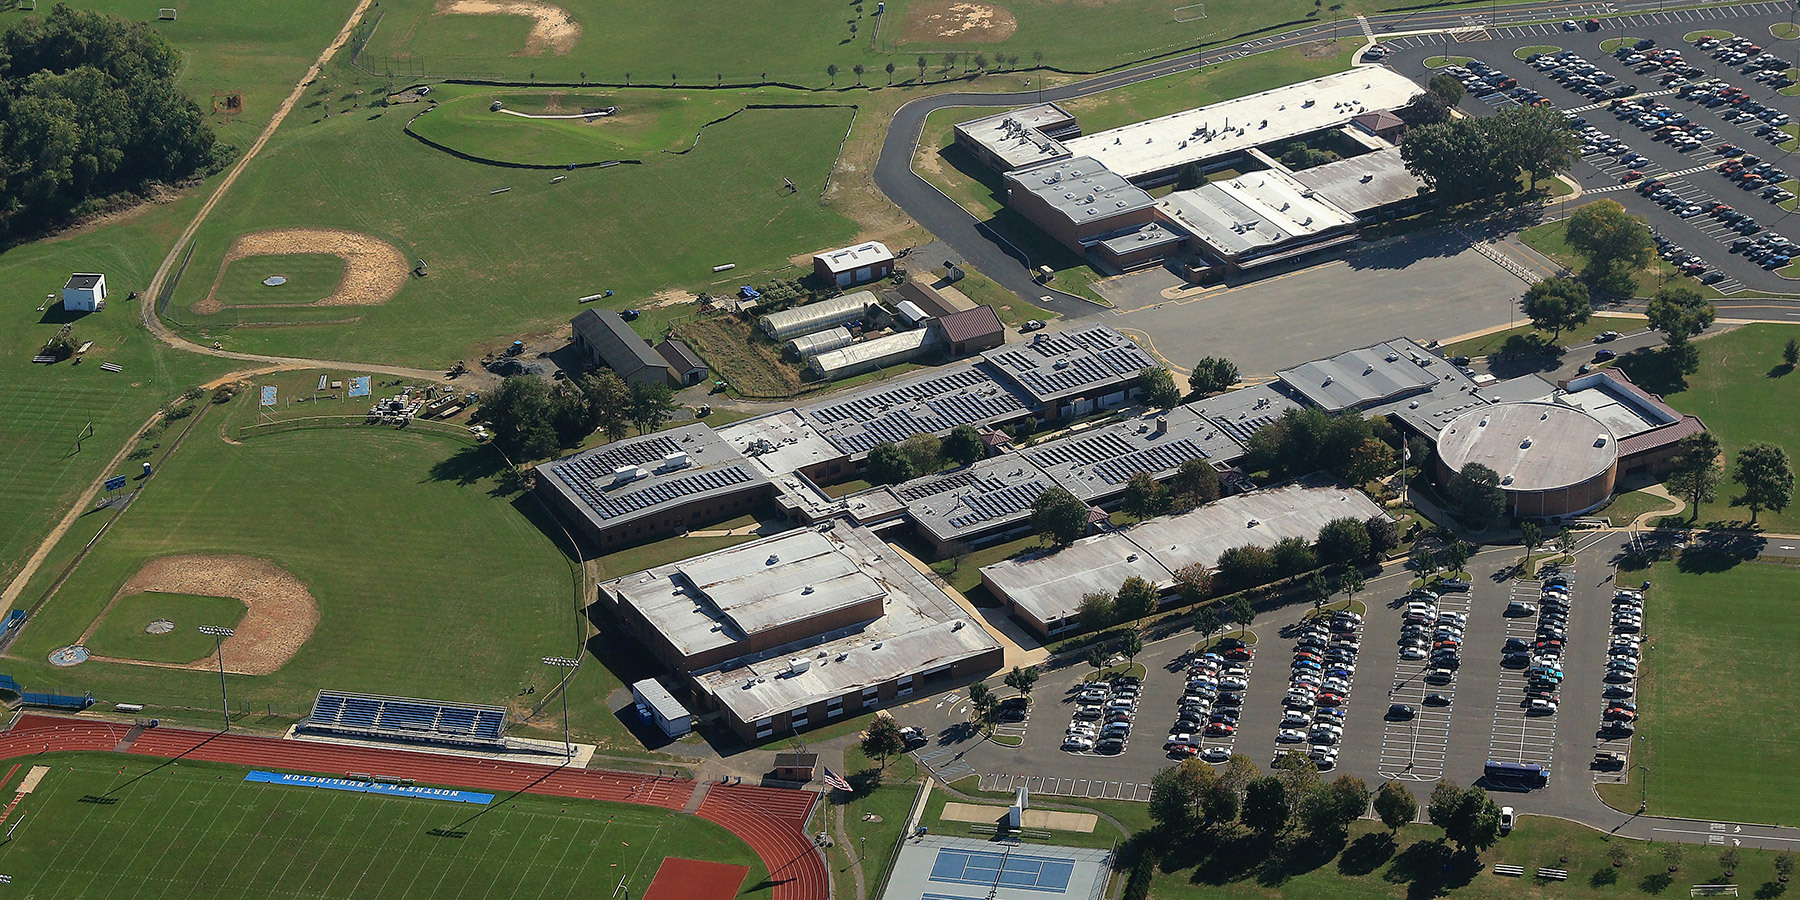 Northern Burlington HS Aerial